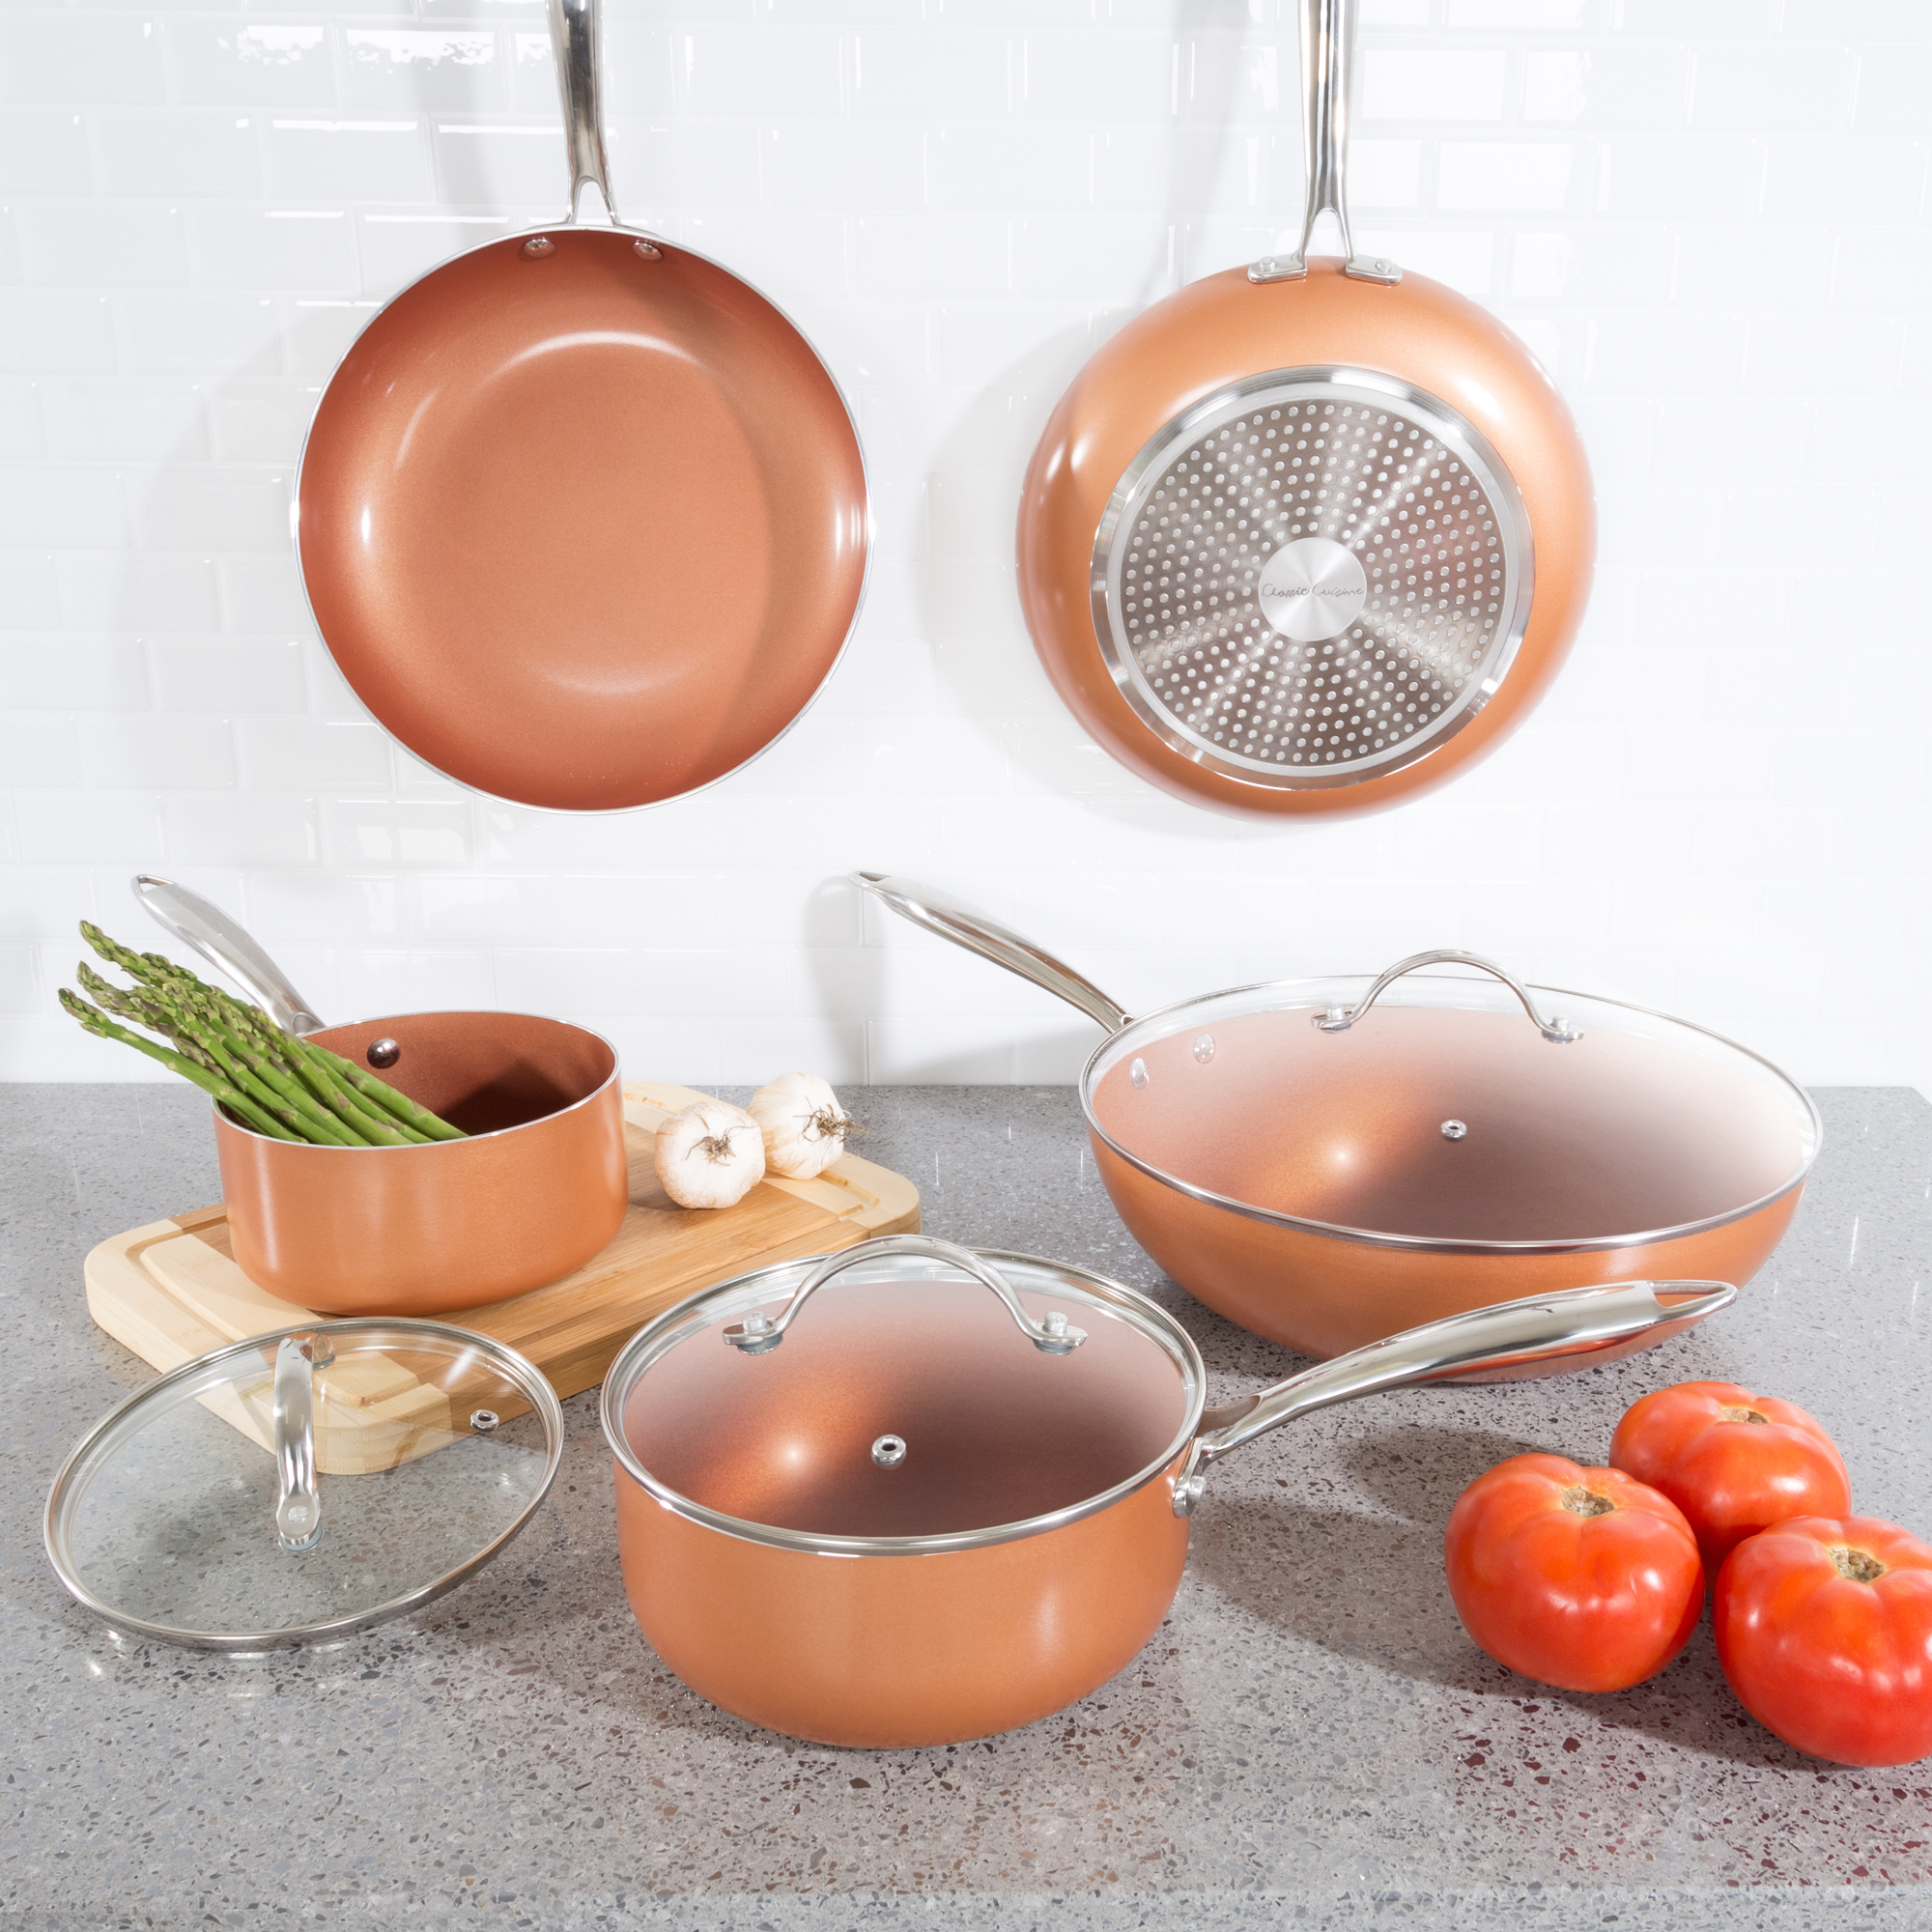 8 Pc Cookware Set with 2 Layer Nonstick Ceramic Coating, Tempered Glass Lid, Copper Color Finish Dishwasher Oven Safe Allumi-Shield